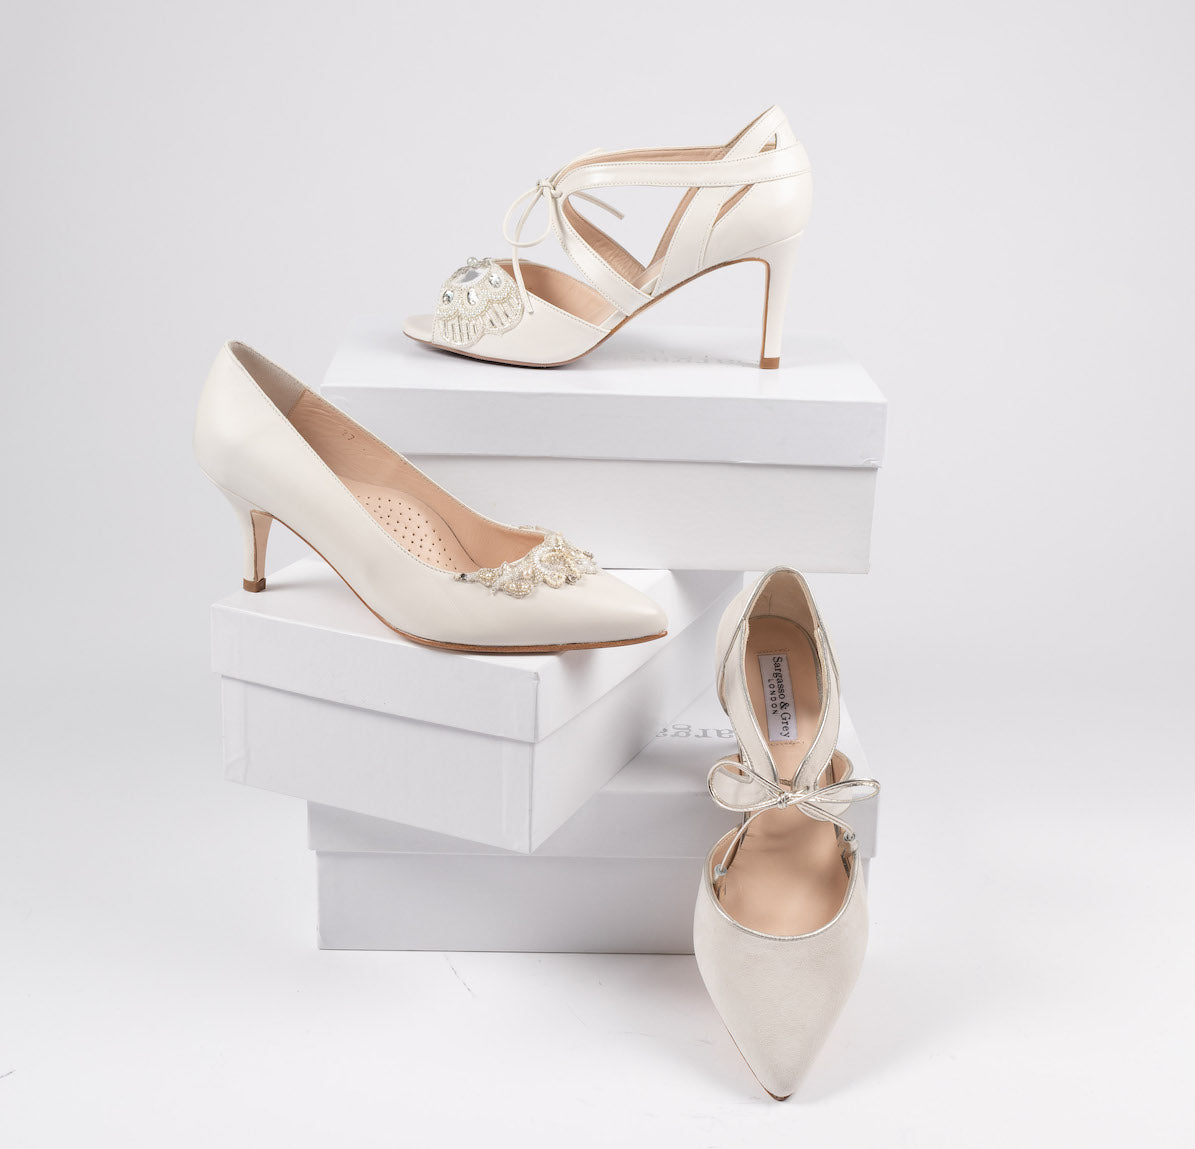 Wide Fit Bridal Shoes Discount Sale, UP TO 18 OFF